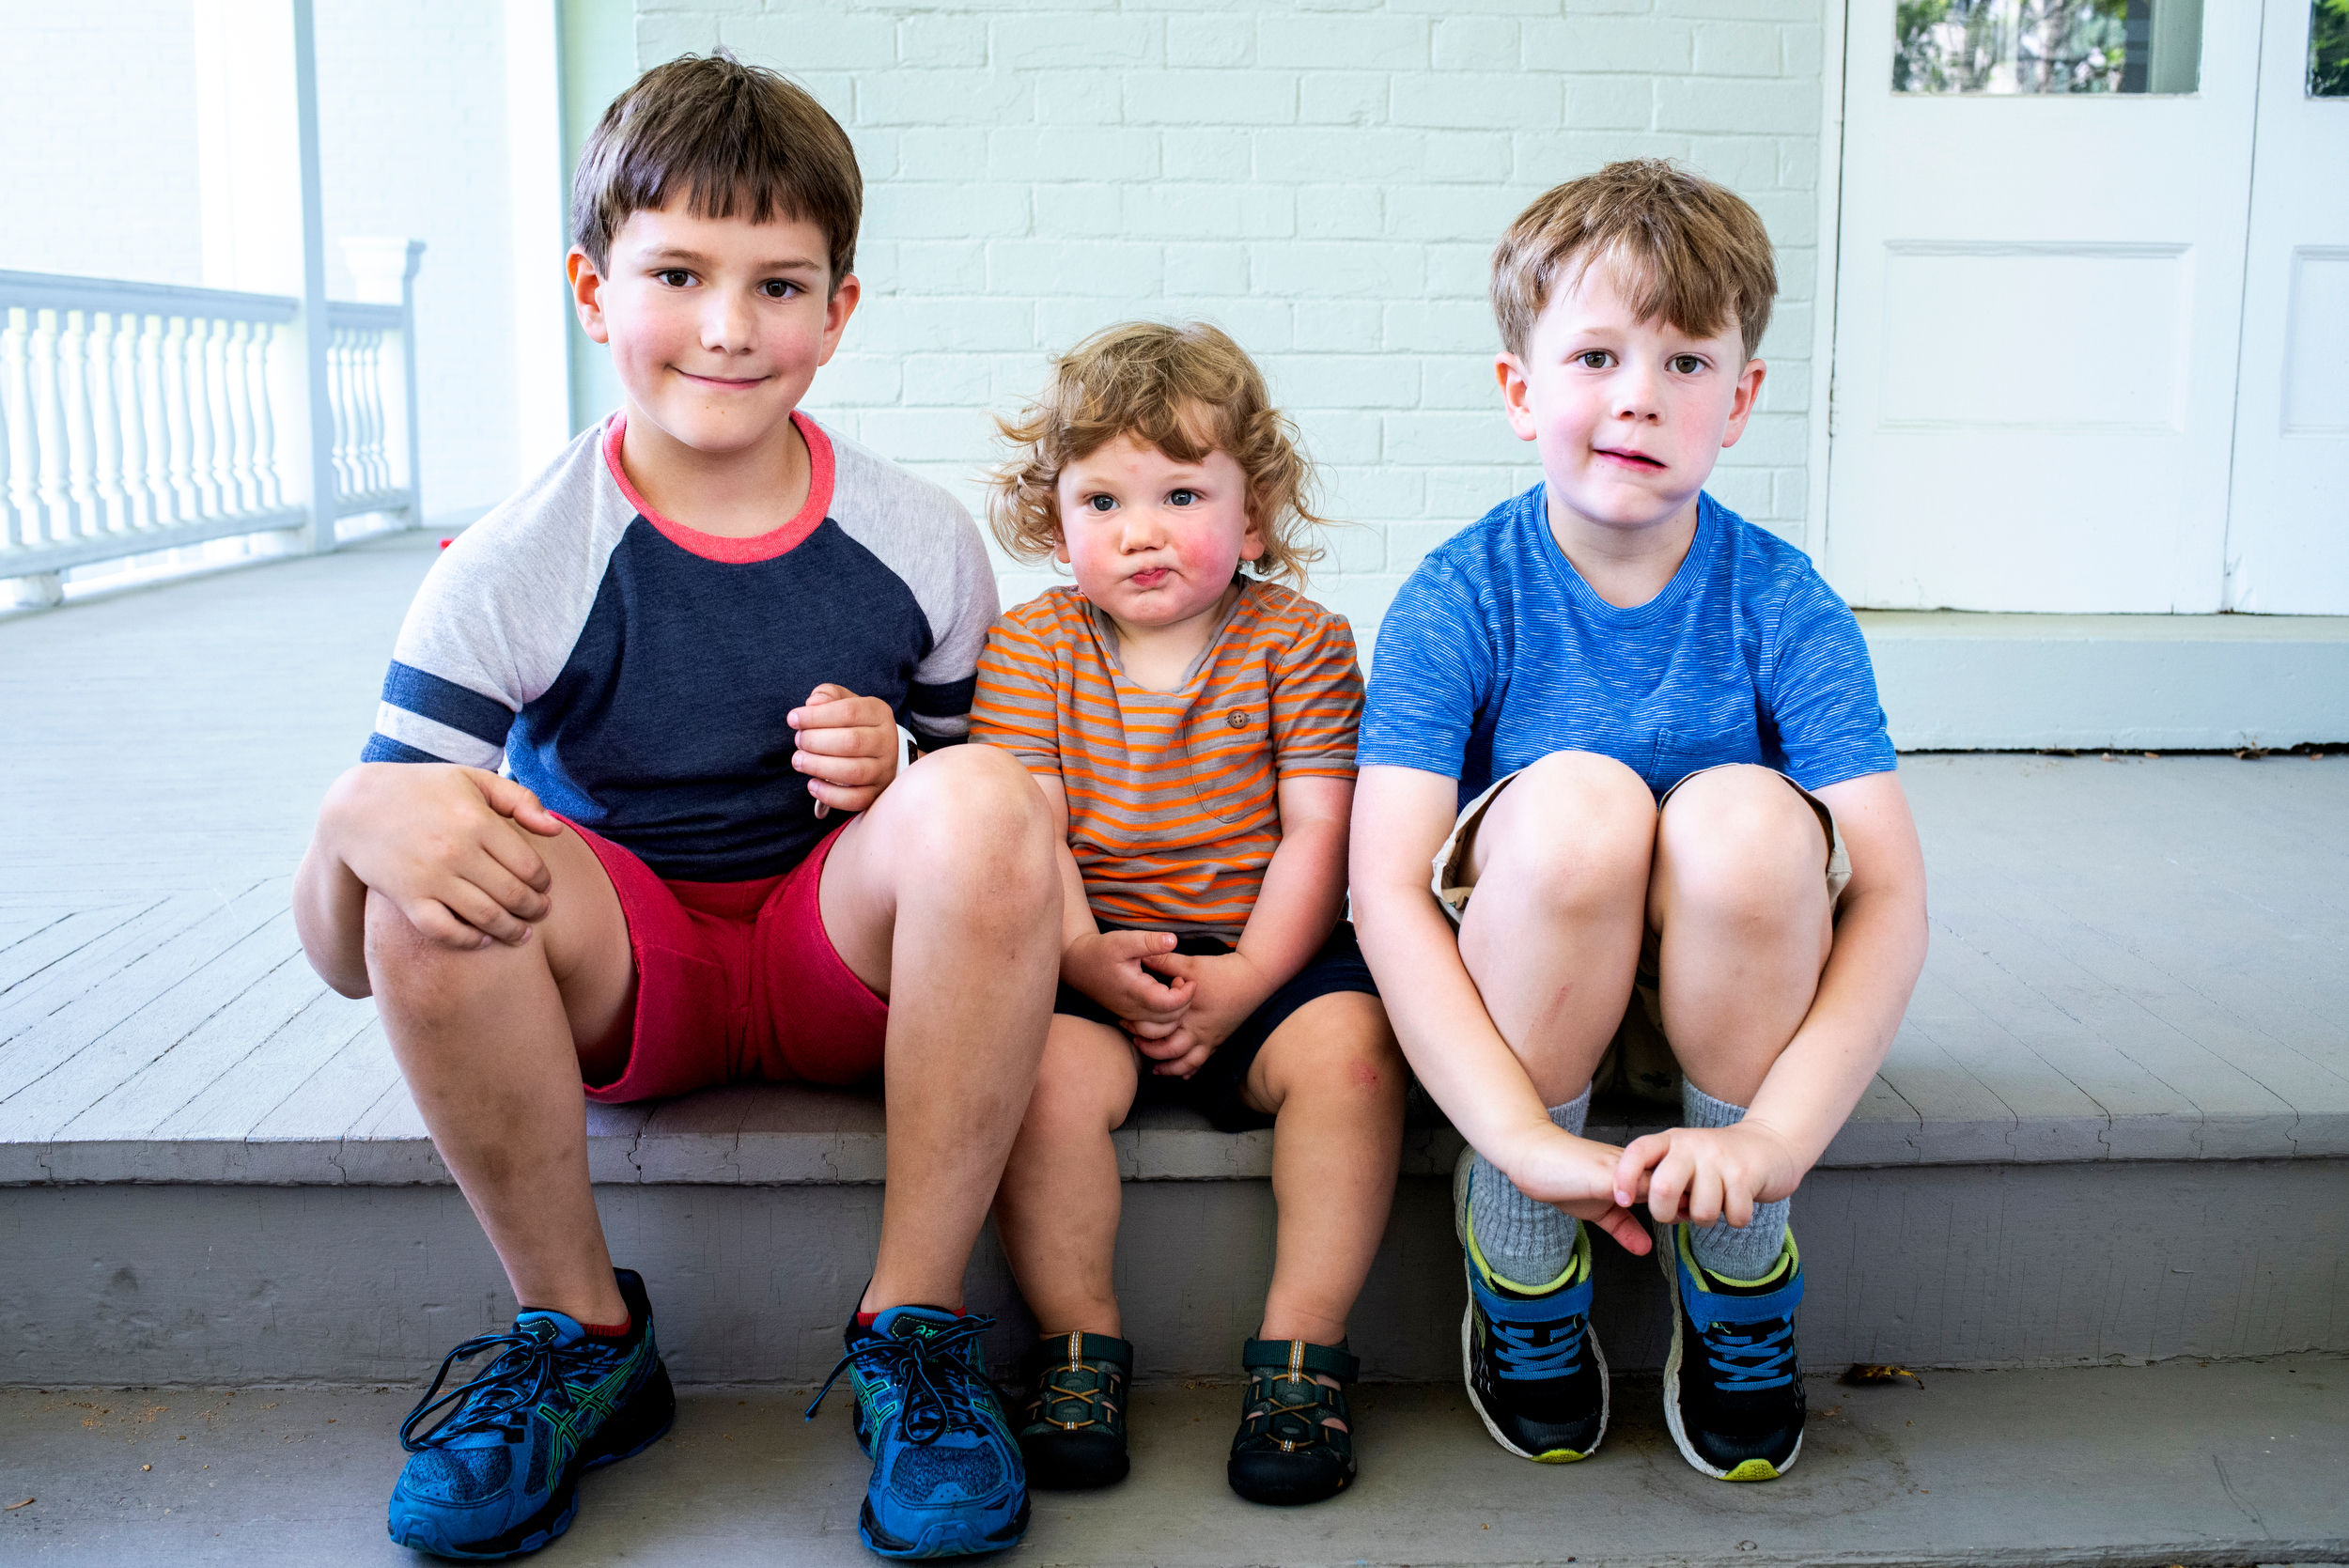 Brotherly love - From backyard basketball to homemade brownies, this sweet family made the most of every moment on a sunny spring morning at their beautiful and bright home in lower Westchester. See their story.